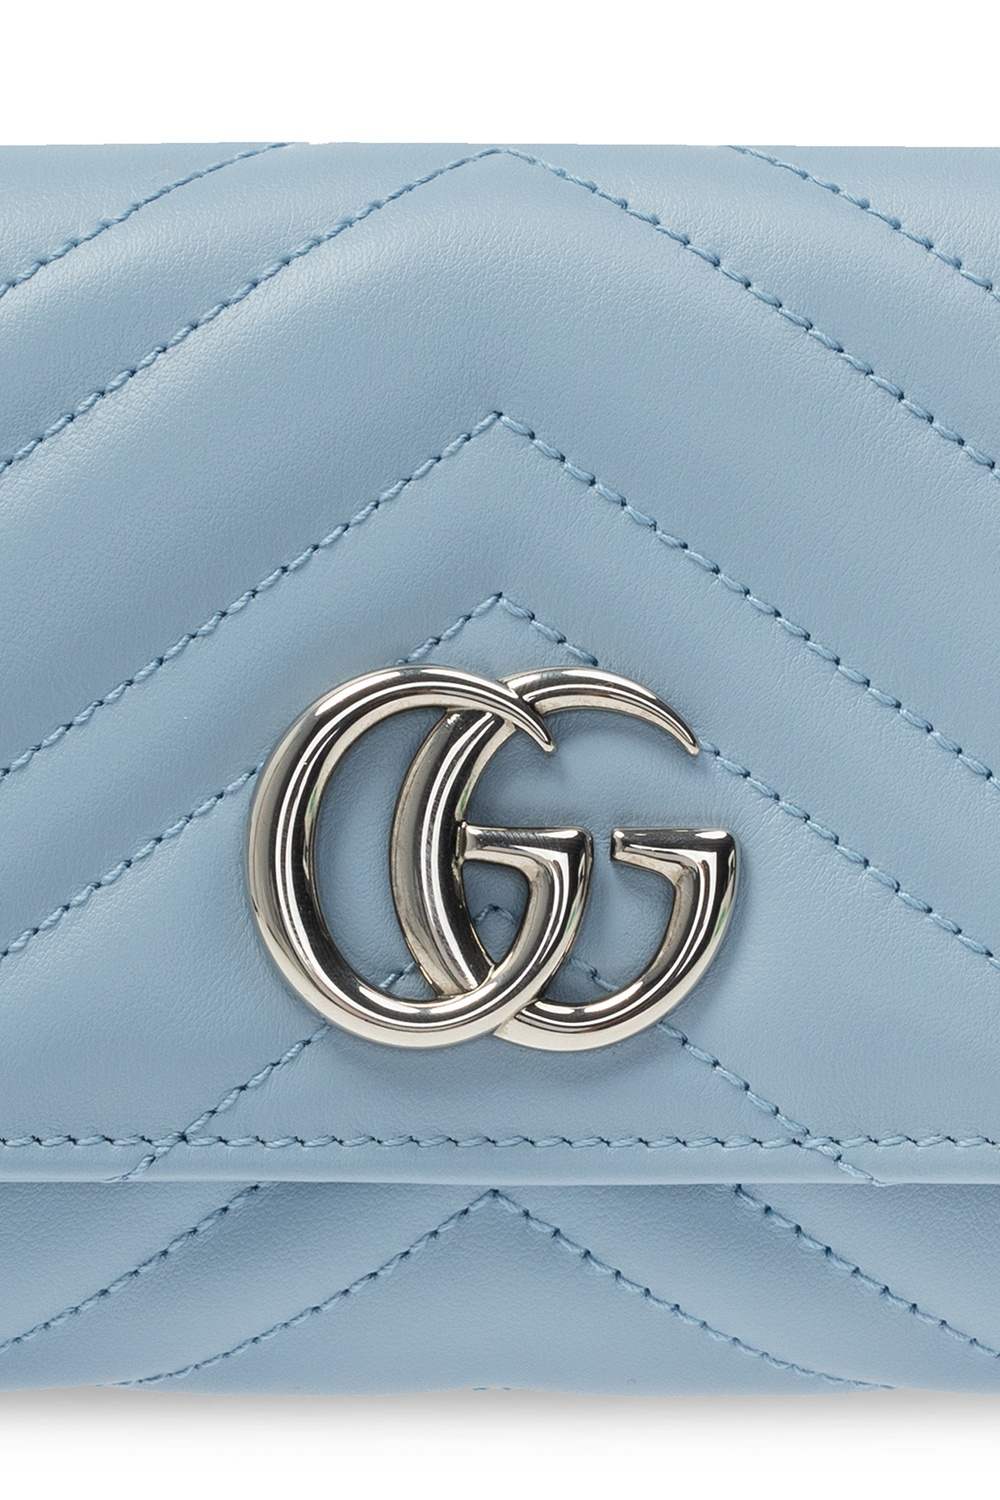 Gucci 'GG Marmont' quilted wallet